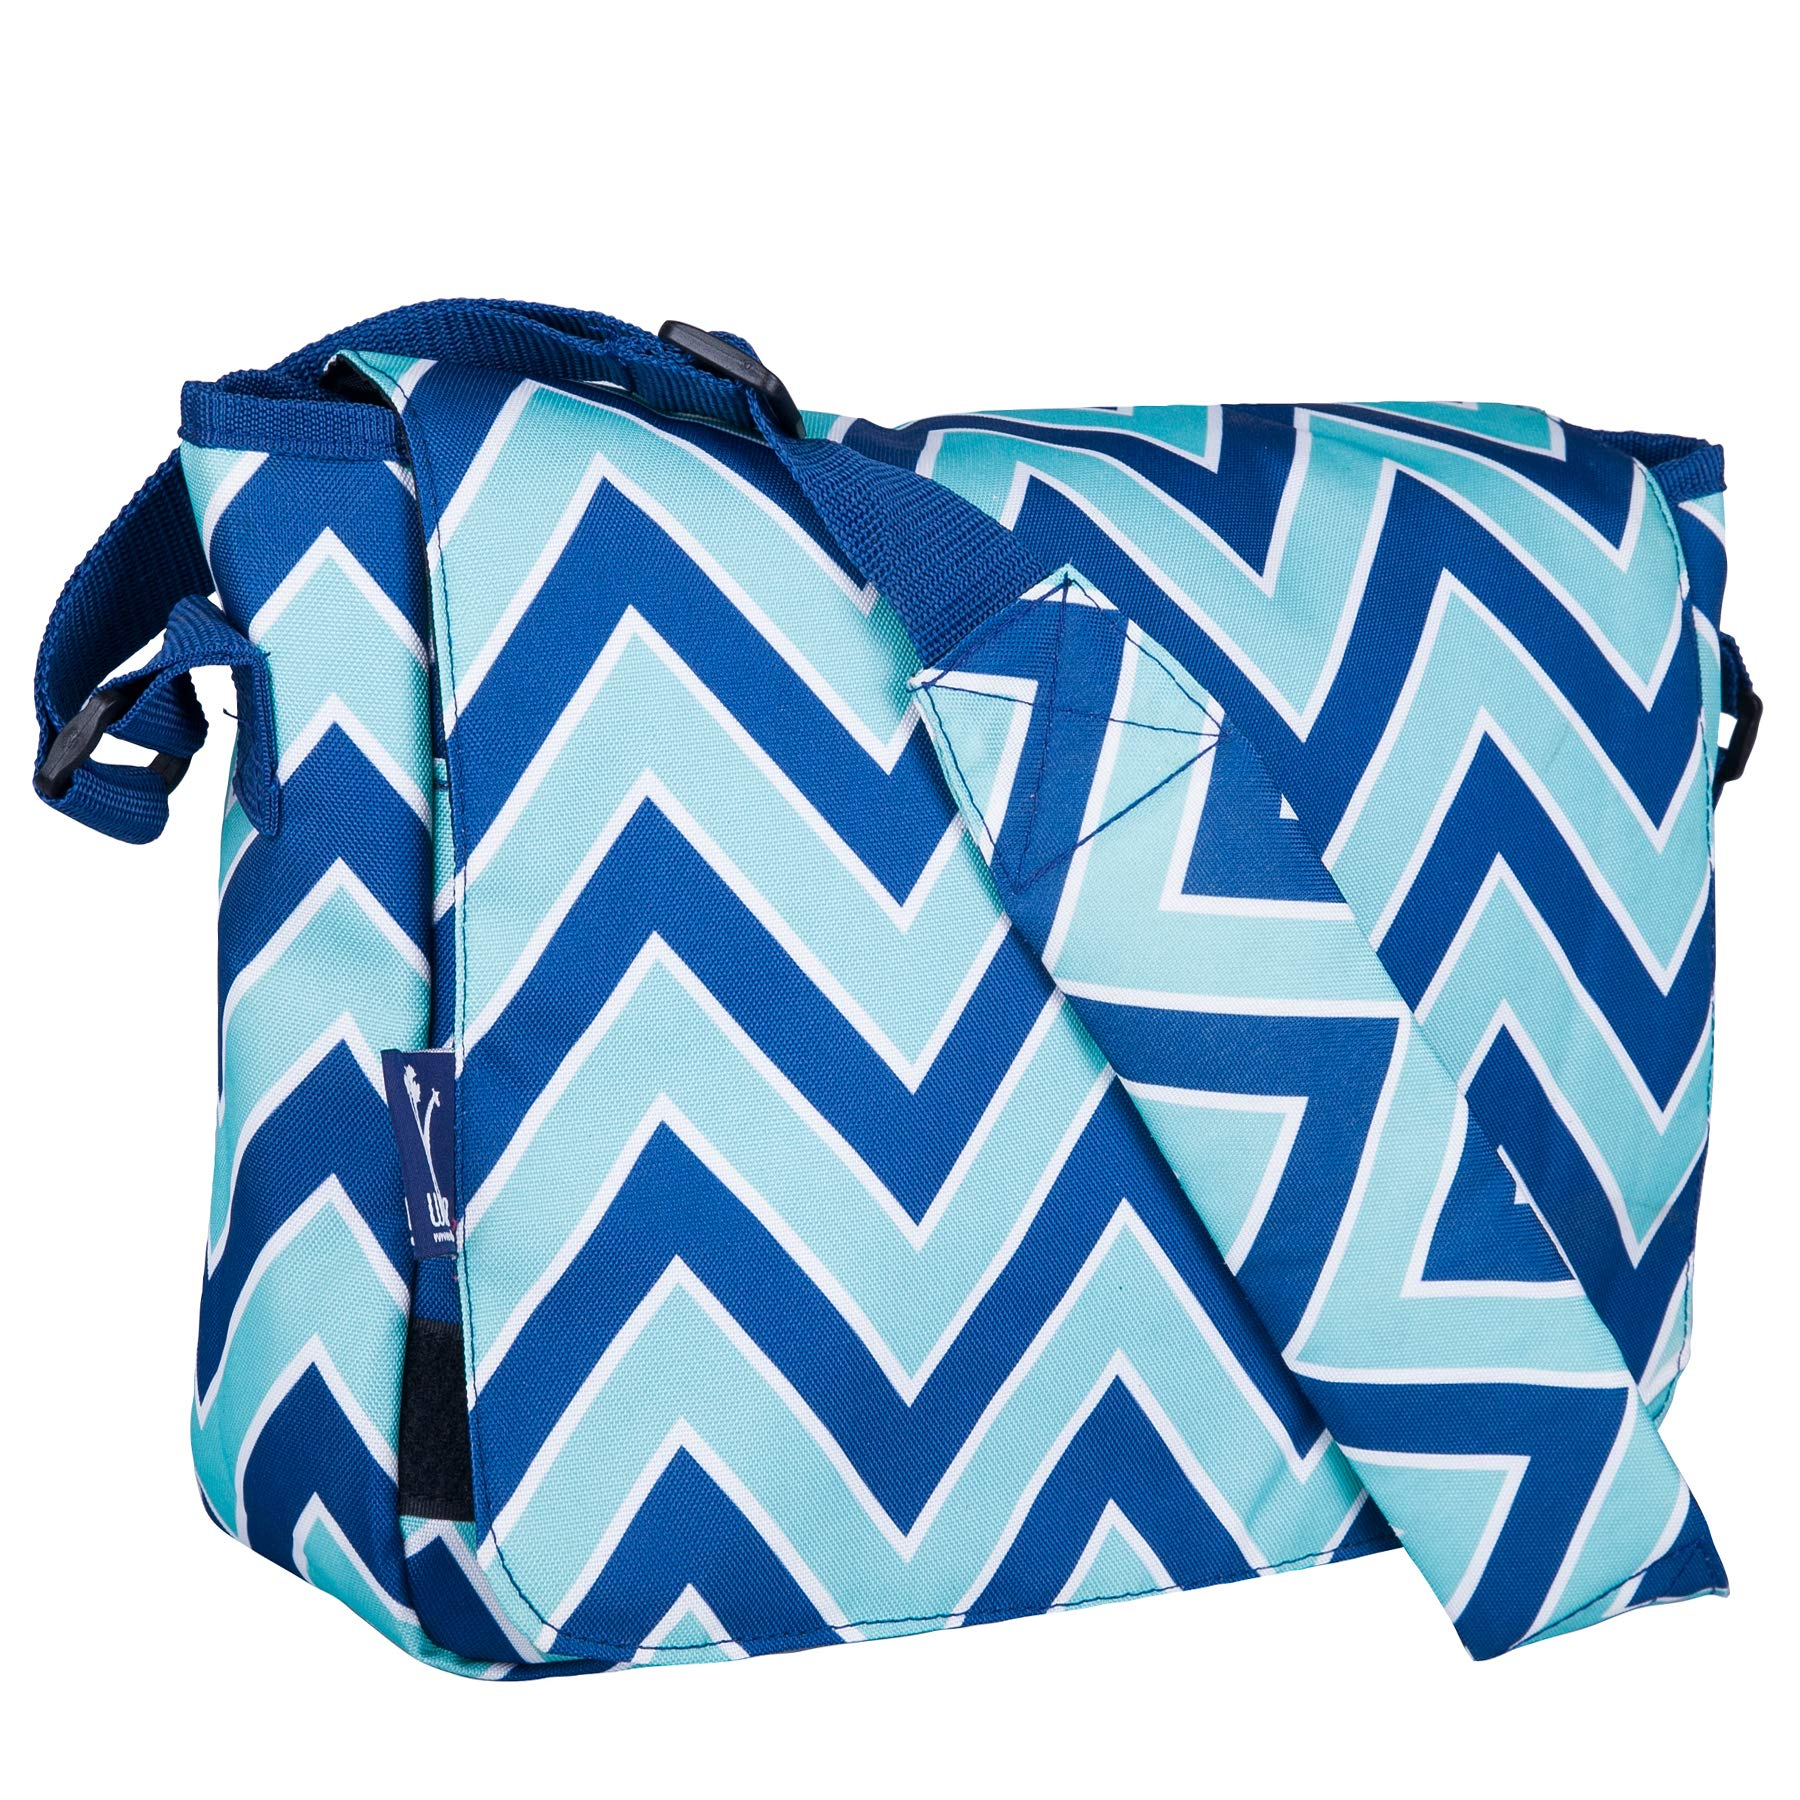 Messenger Bag, Wildkin 13 x 10 Inch Messenger Bag, Includes Interior and Exterior Pockets and Velcro Closure, Ages 8+, Perfect for School, Sports, and Day Trips – Zigzag Lucite